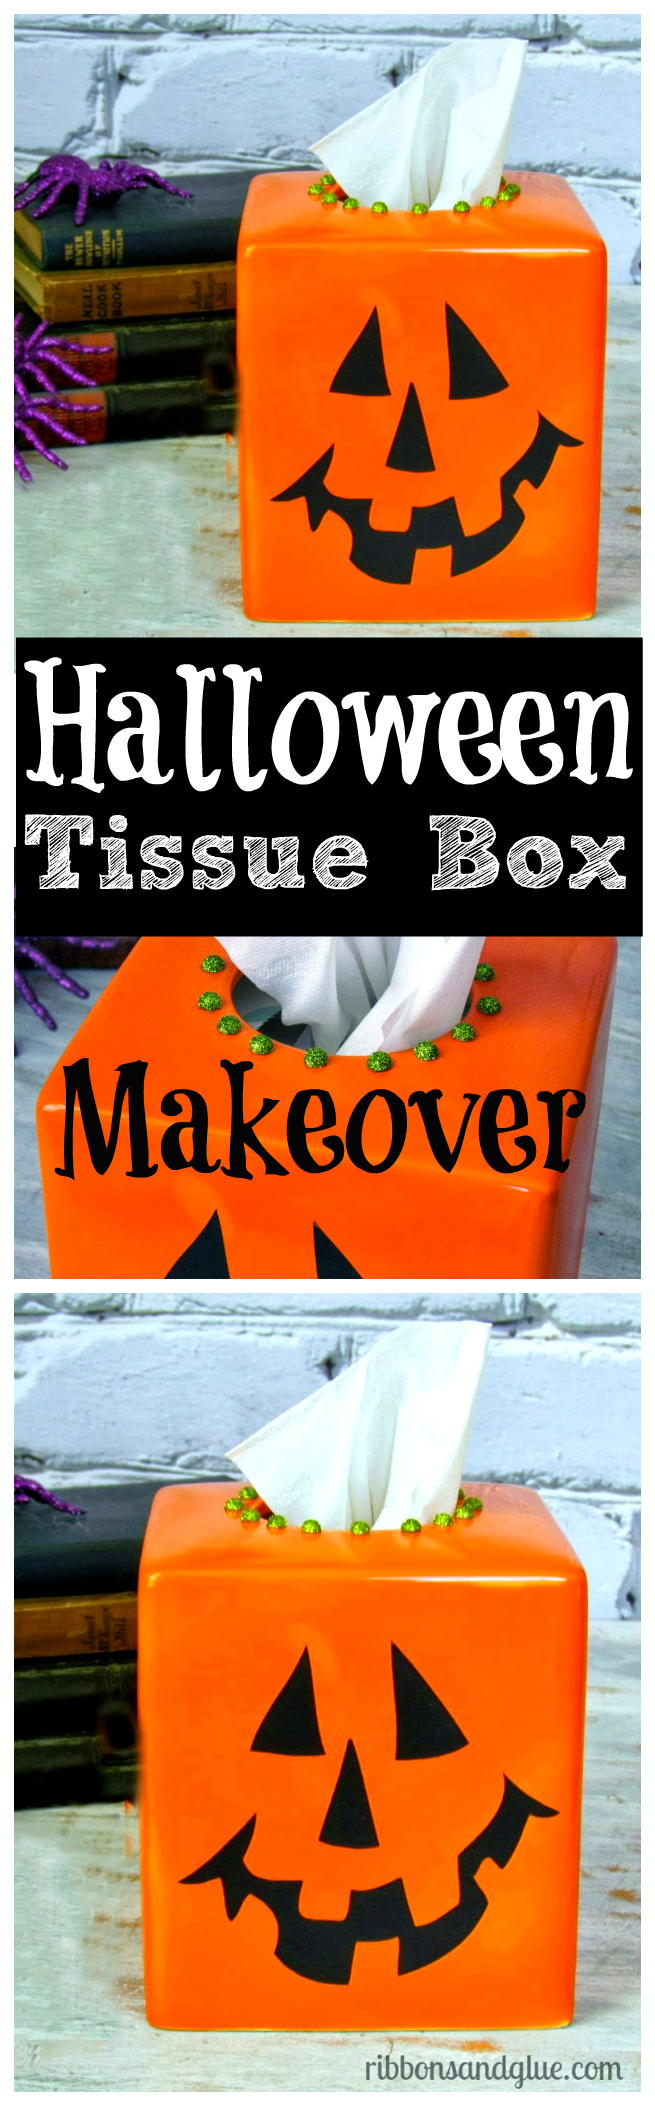 Give a pain ceramic tissue box cover a Halloween makeover with just spray paint and black vinyl .  Easy Halloween decoration idea.